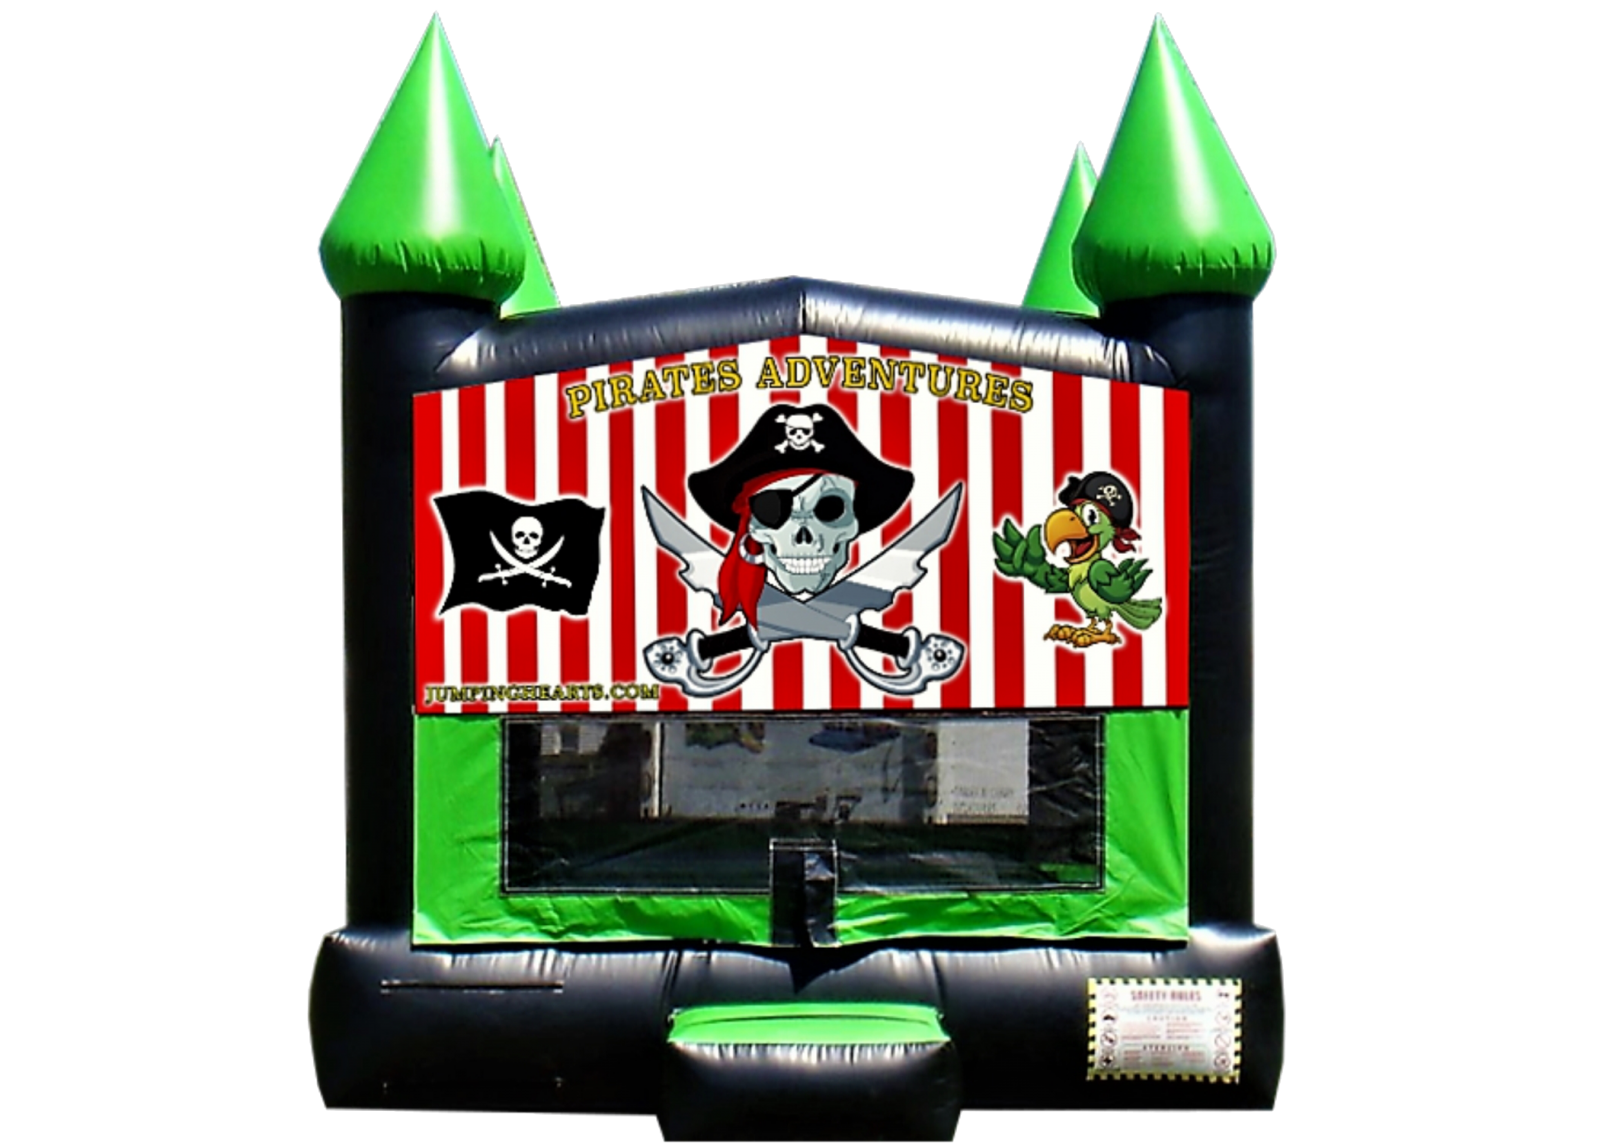 pirate bounce house rental Nashville, jumping hearts party rentals 615 854 1020